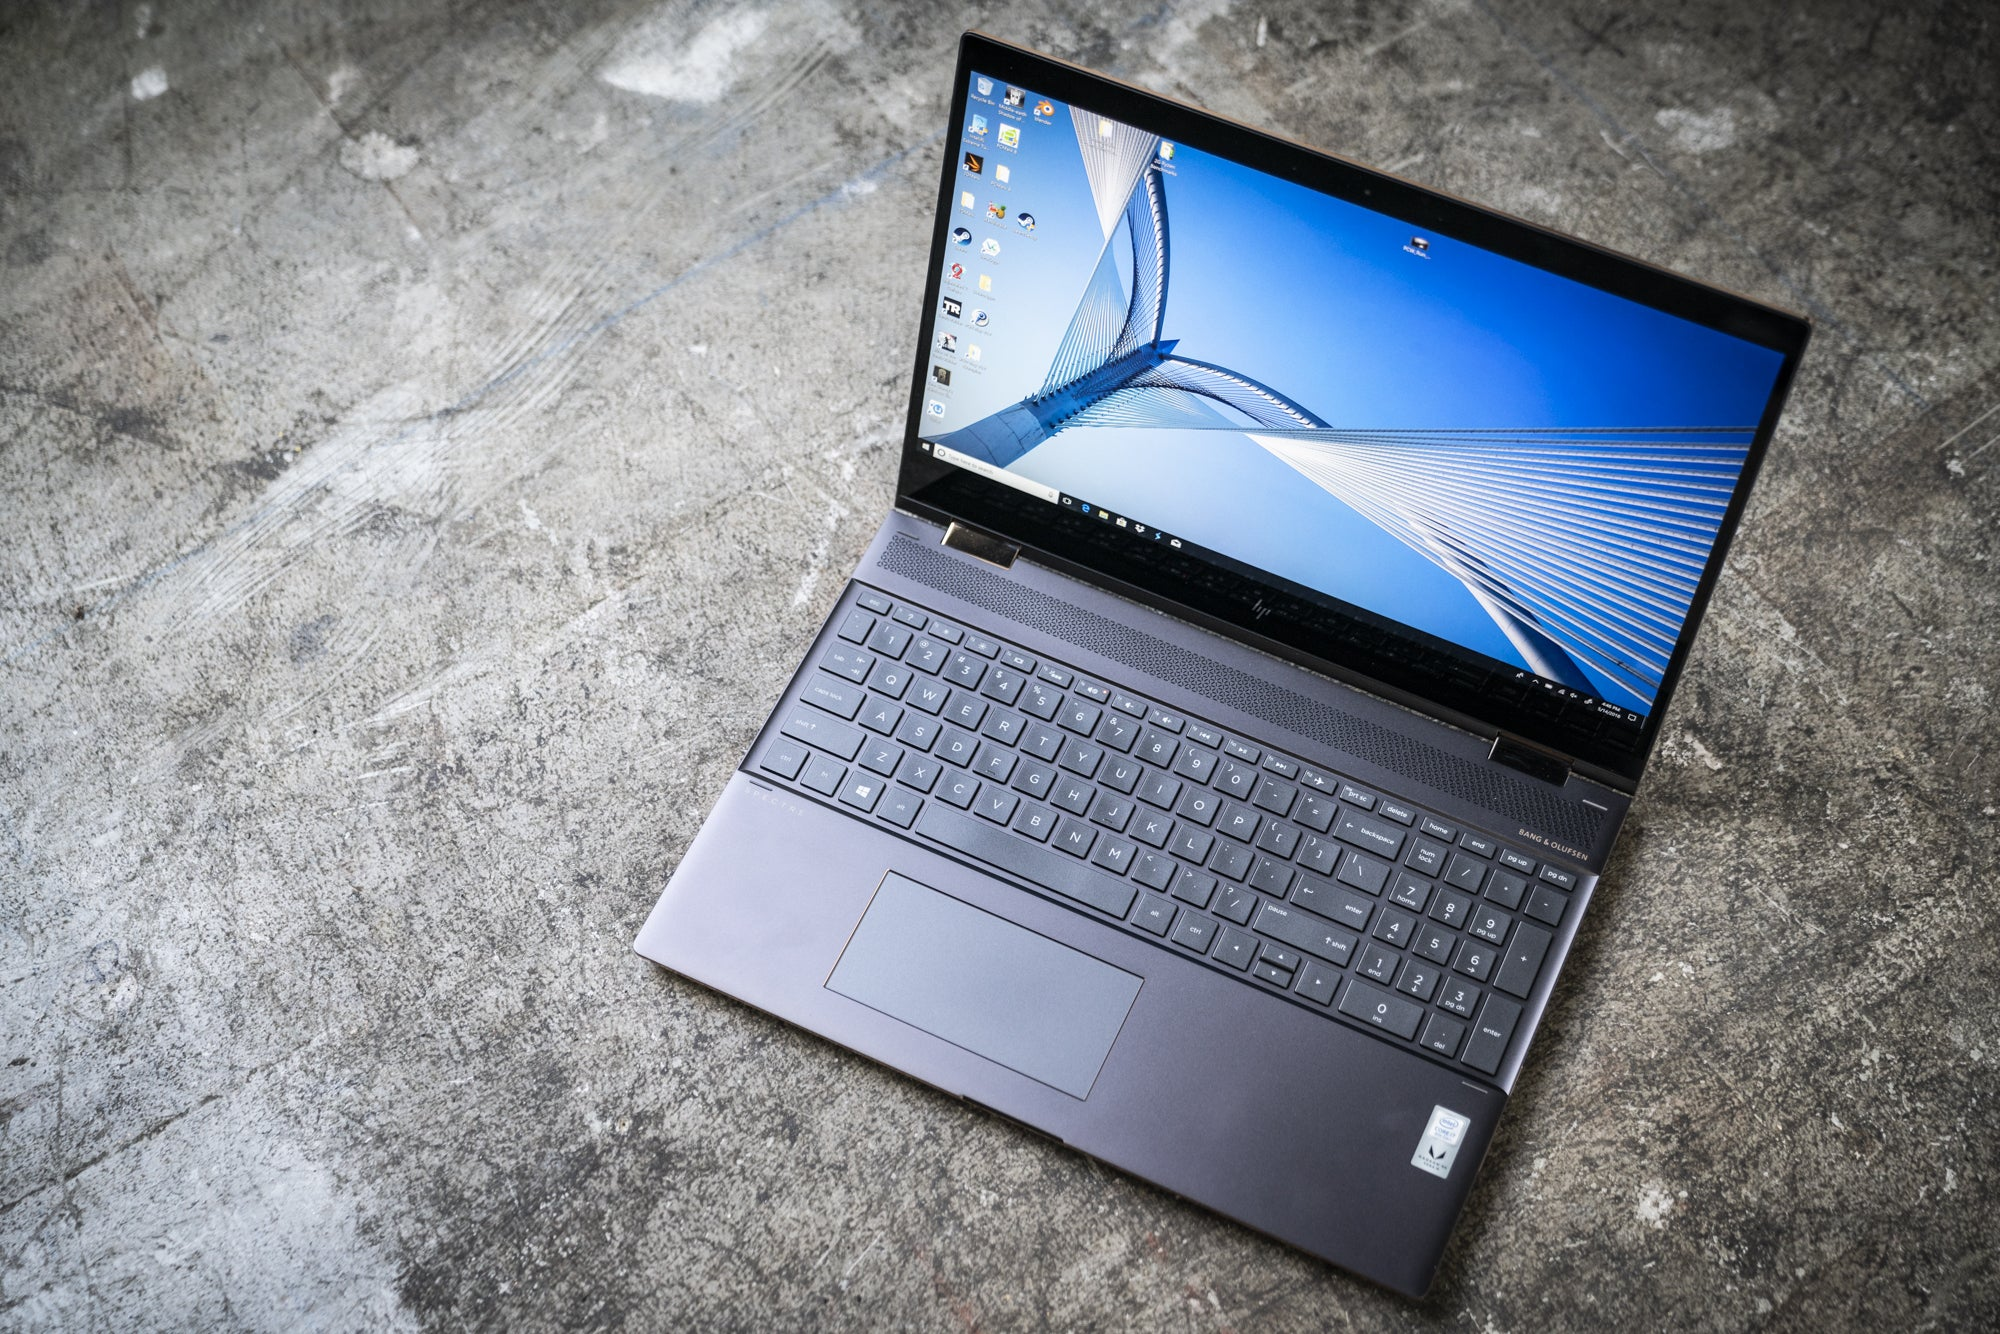 Hp Spectre X360 15 Review With Kaby Lake G This Laptop Can Do Mouse Gaming M 150 Almost Anything Pcworld